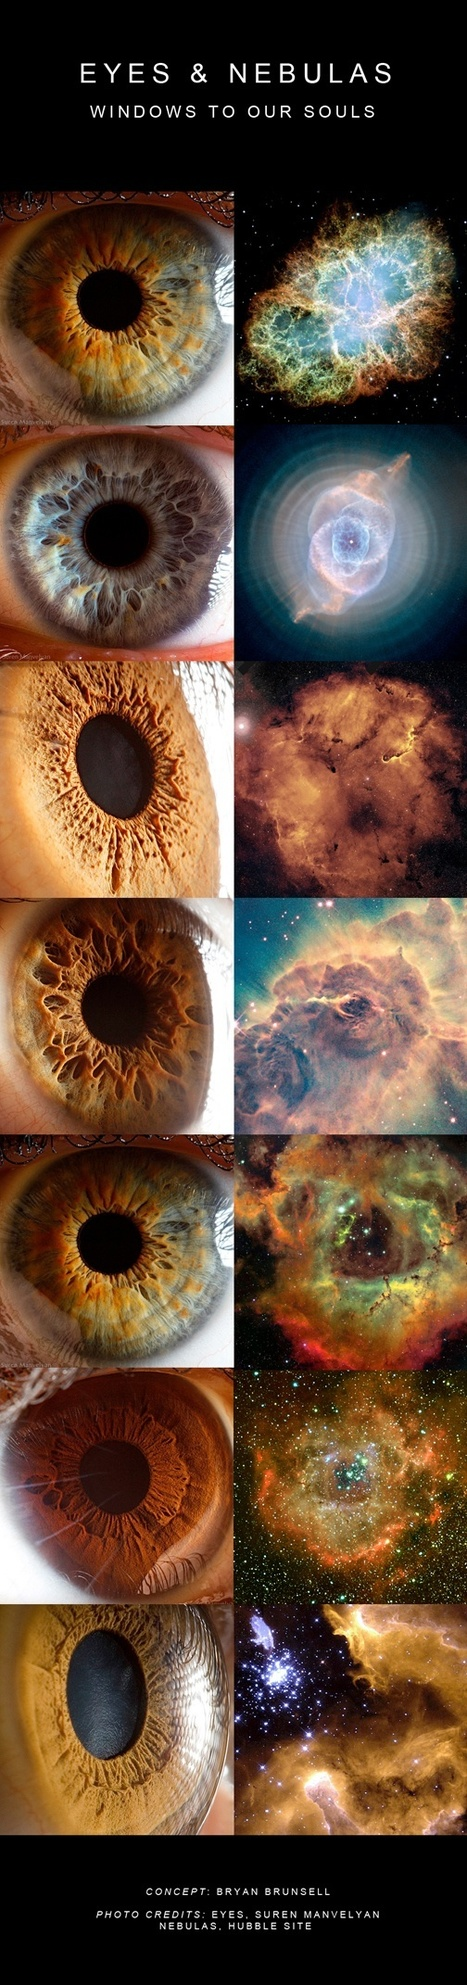 EYES & NEBULAS: Windows to our souls | cibered | Scoop.it